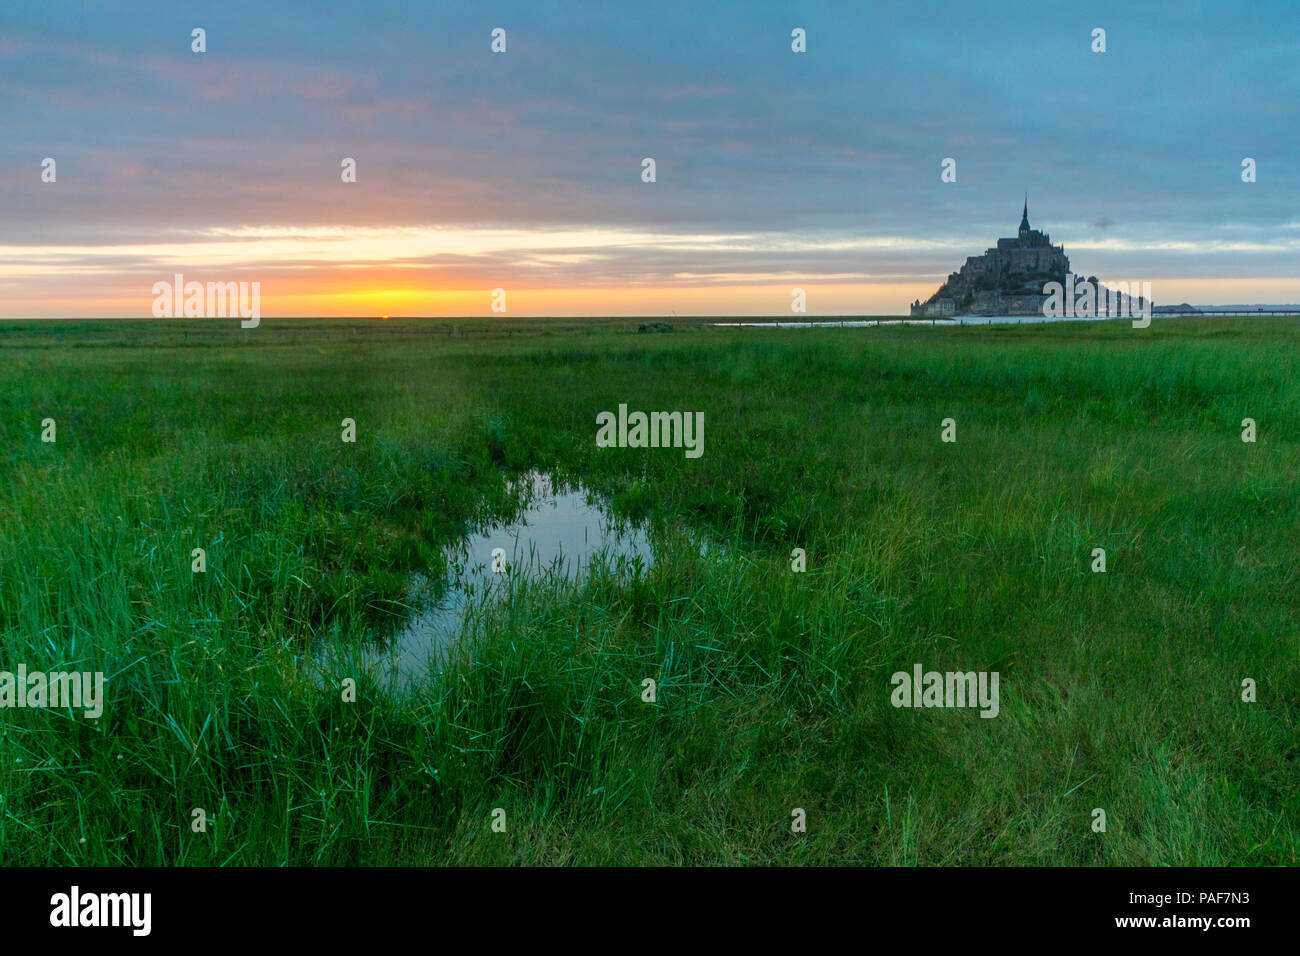 Mont st. Michel, Normandy, France. A half-flooded field in front of the famous island and abbey at dusk Stock Photo